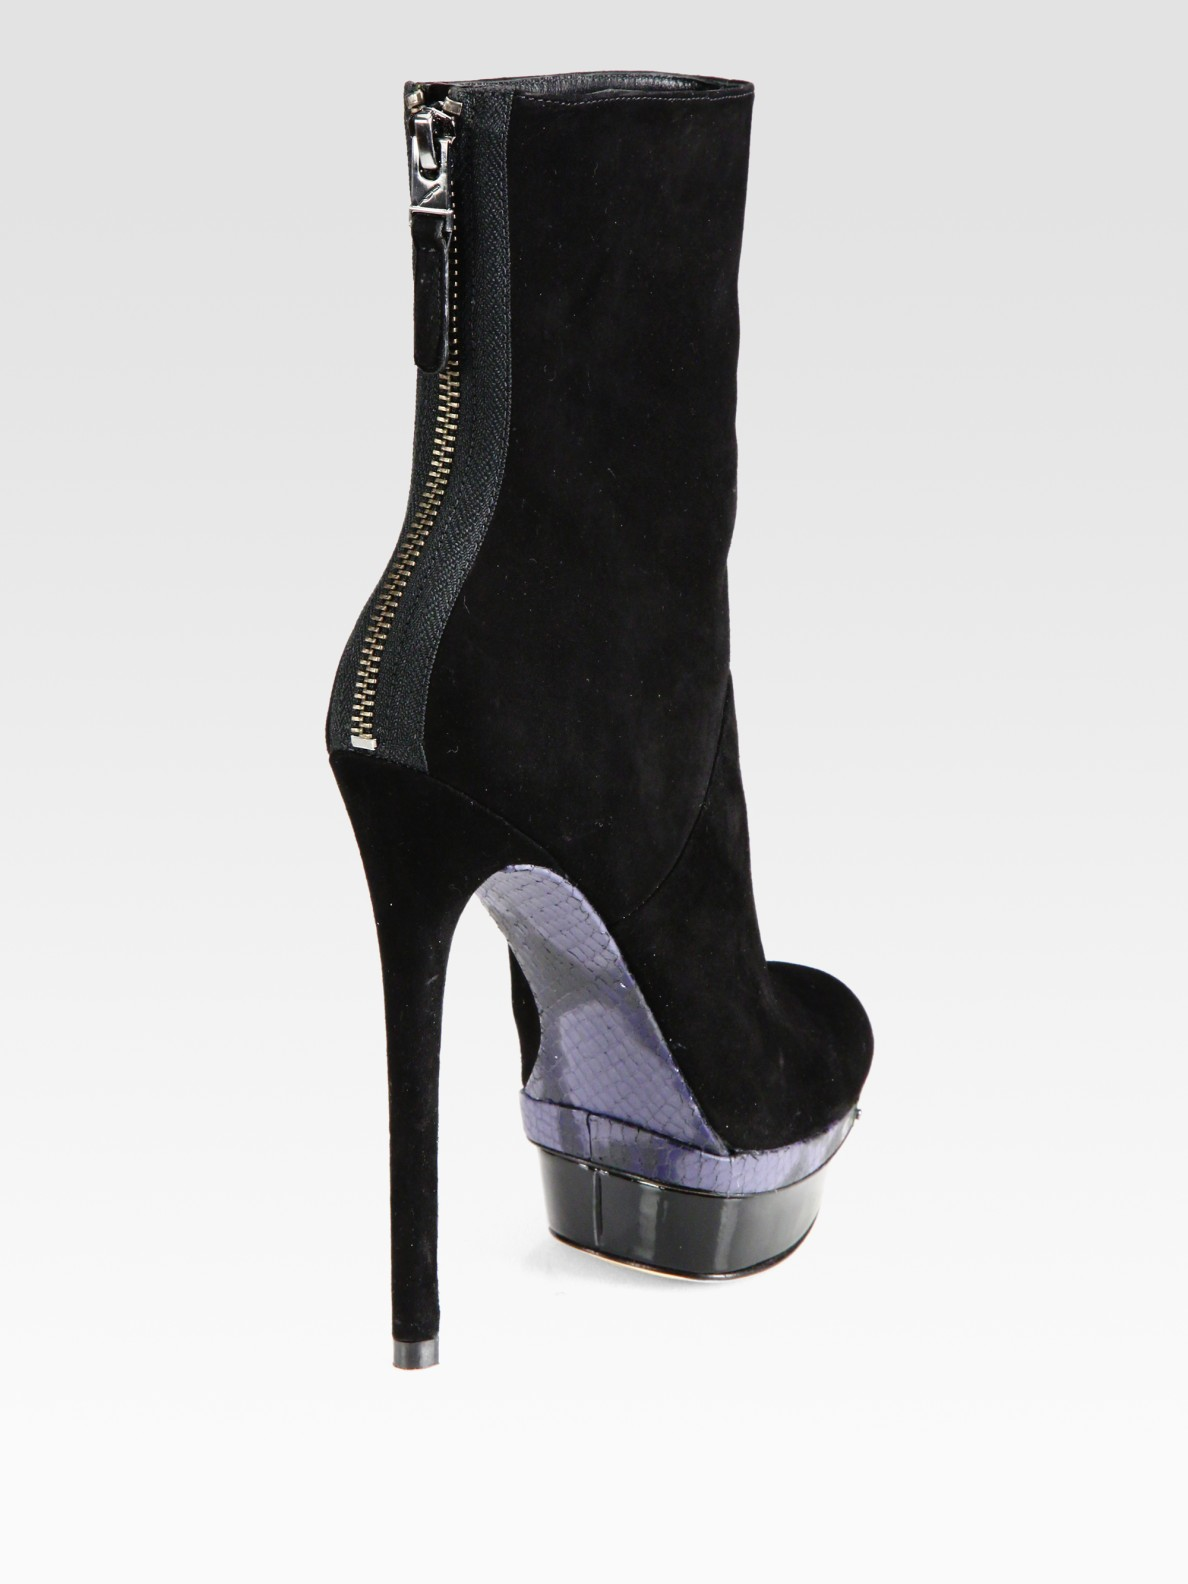 Brian Atwood Suede Platform Ankle Boots outlet official clearance latest collections MtsVR